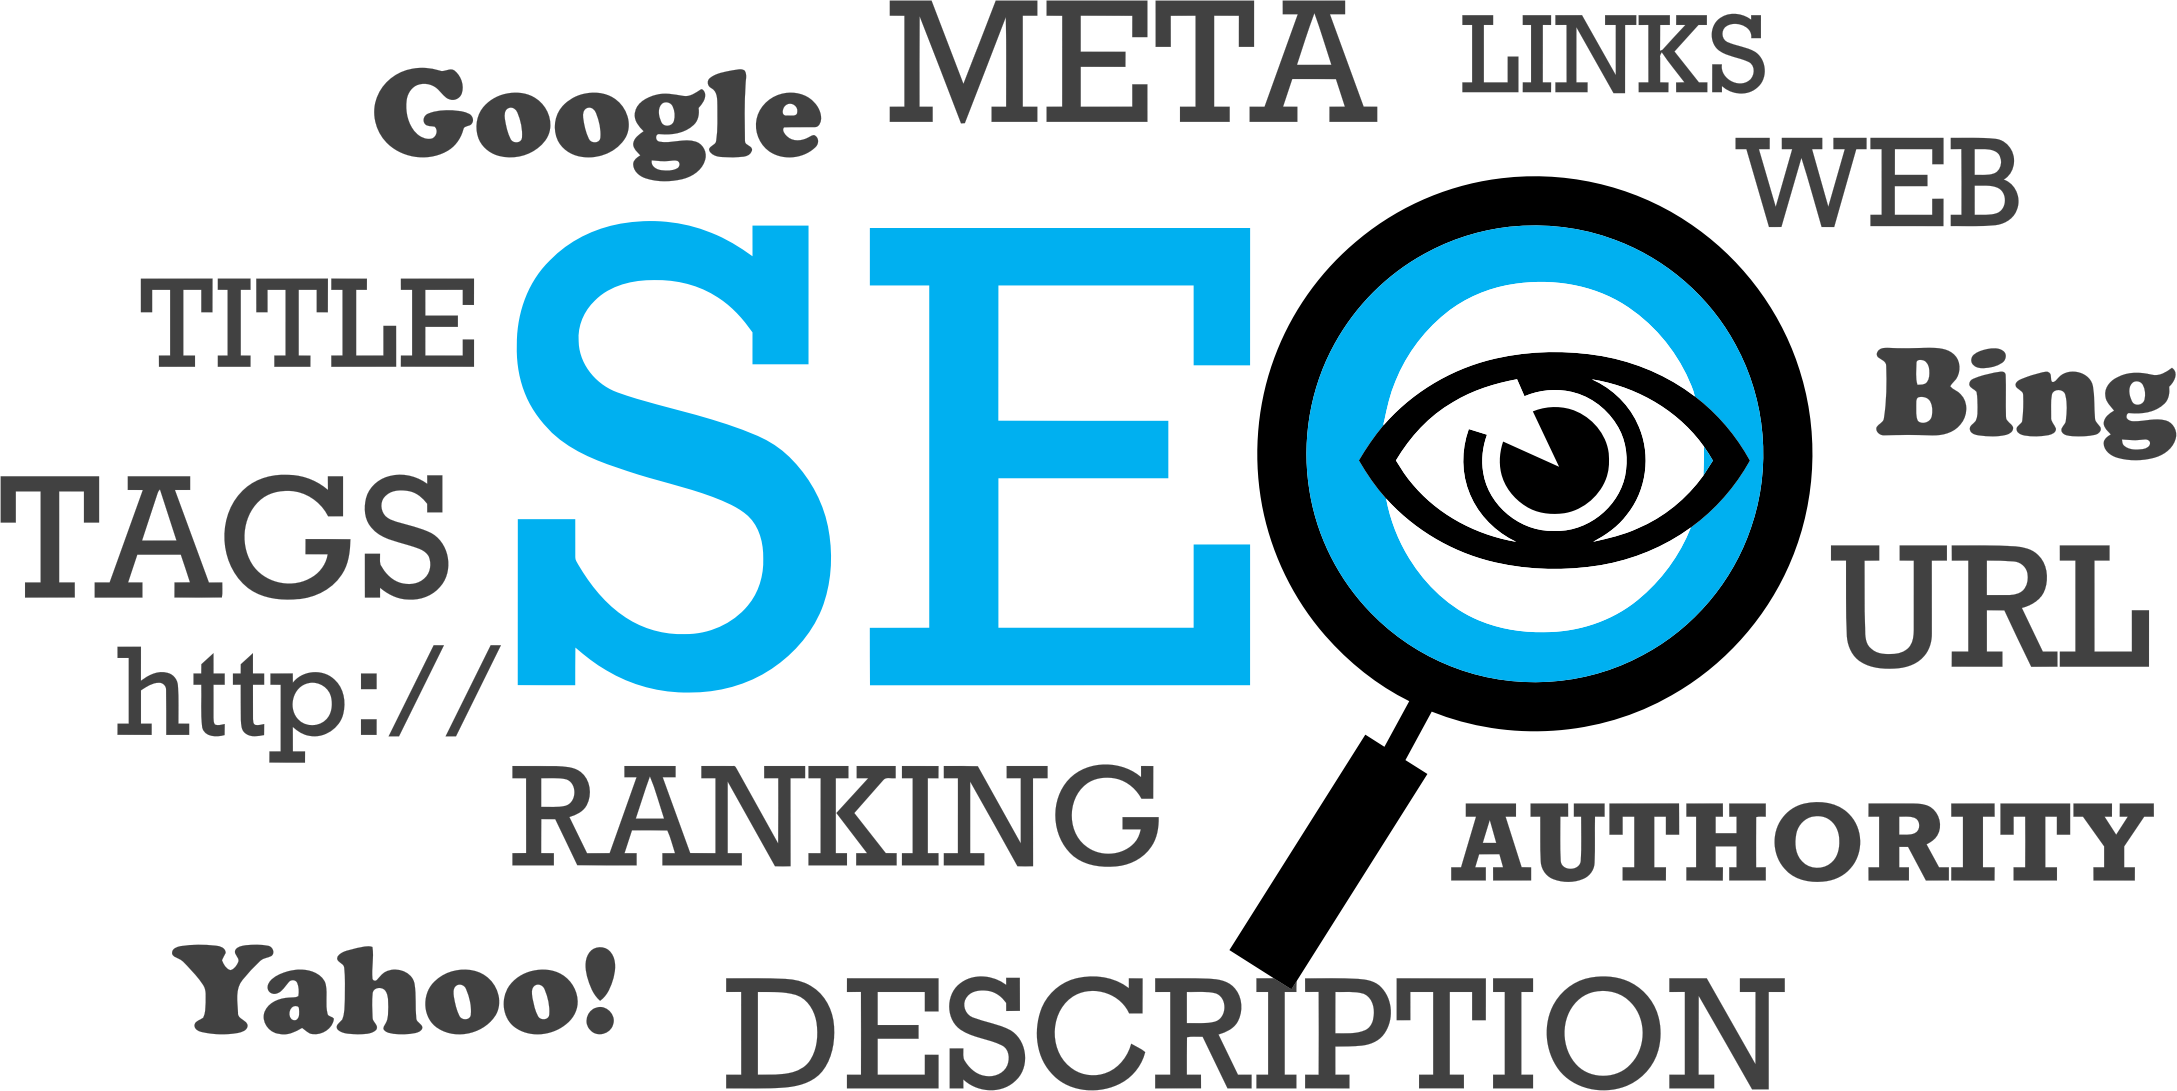 Bing clipart search engine svg stock Search engines clipart - ClipartFest svg stock